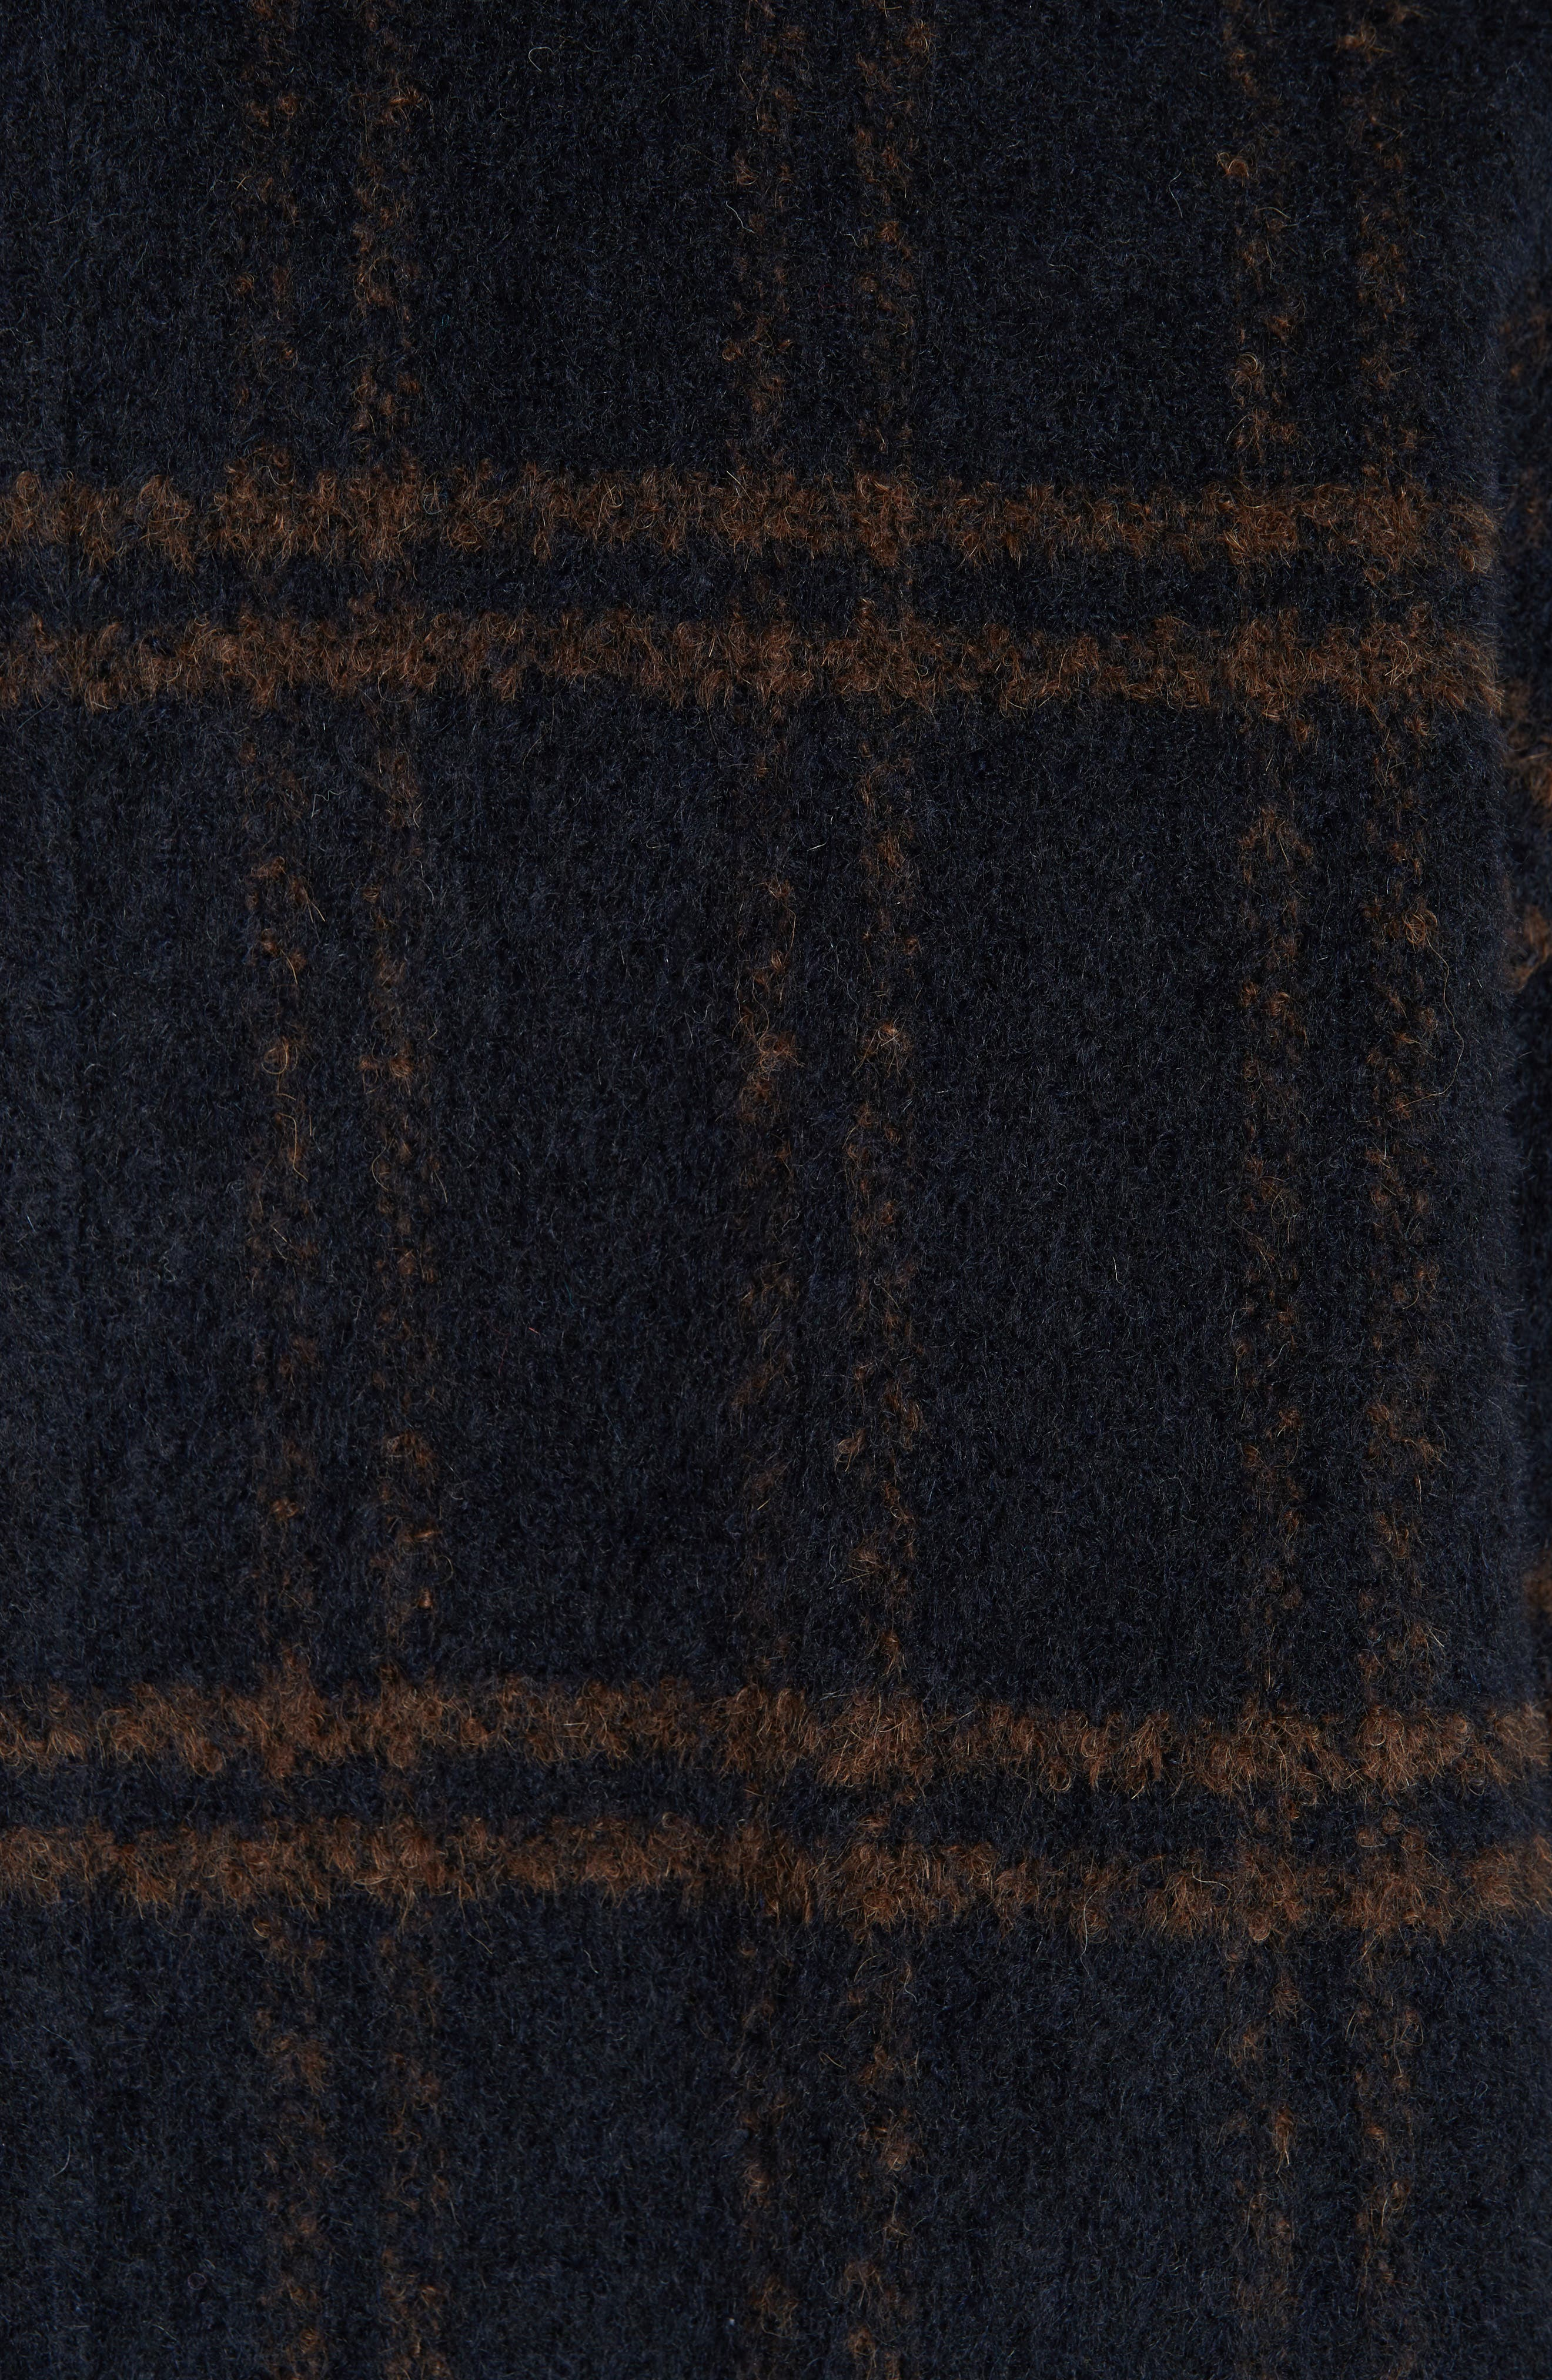 Double Breasted Plaid Alpaca Blend Coat,                             Alternate thumbnail 6, color,                             MIDNIGHT